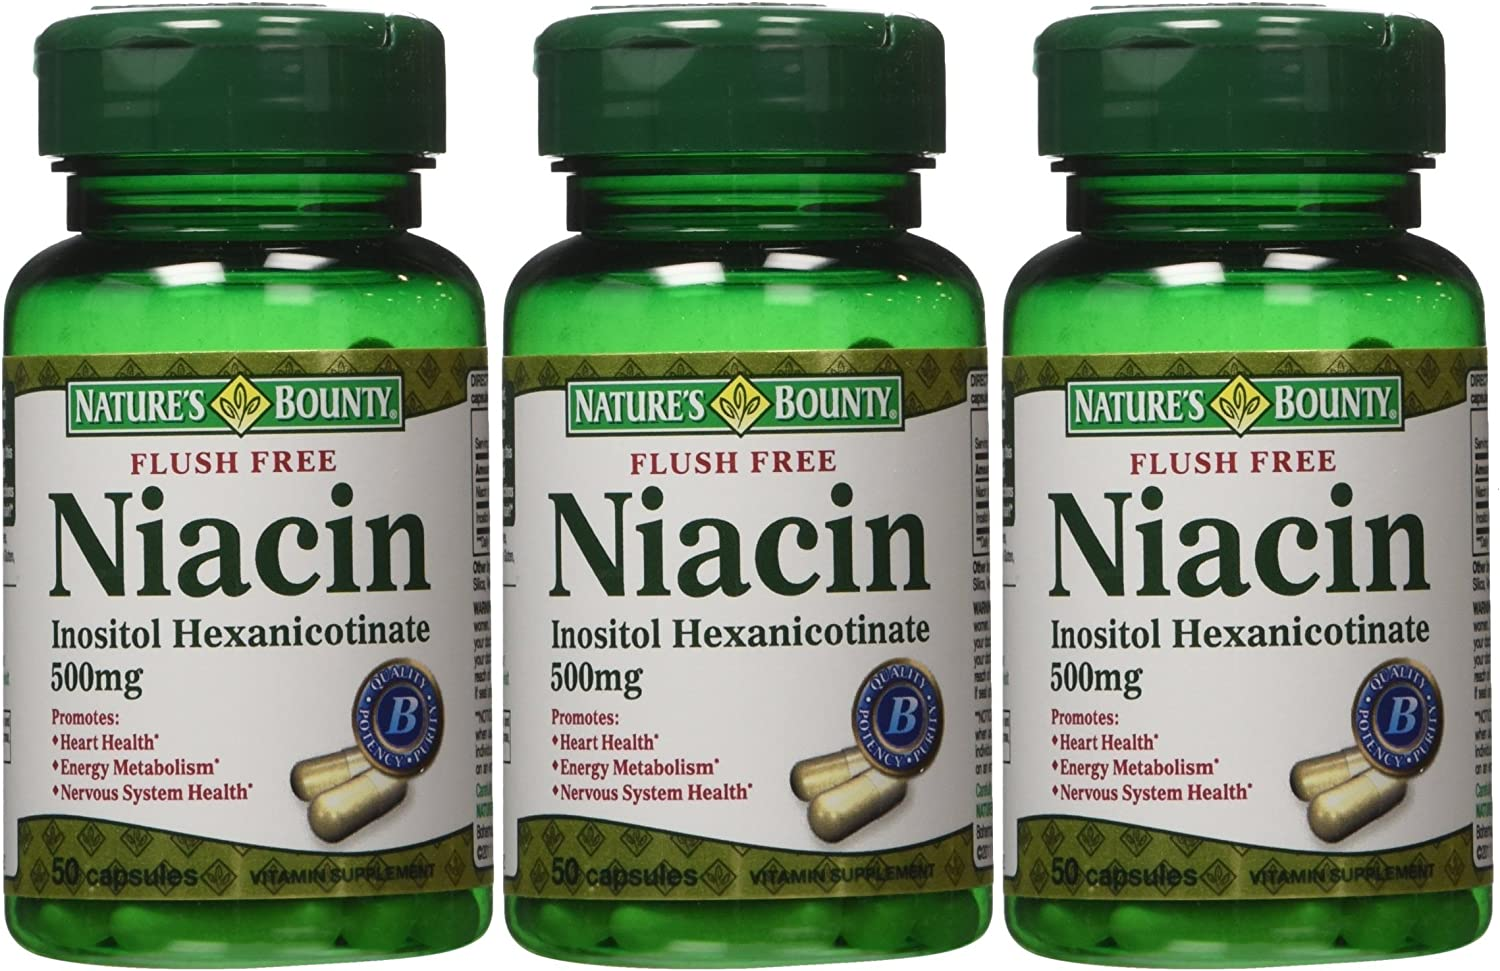 Nature s Bounty Flush Free Niacin 500 Mg, 150 Capsules 3 X 50 Count Bottles